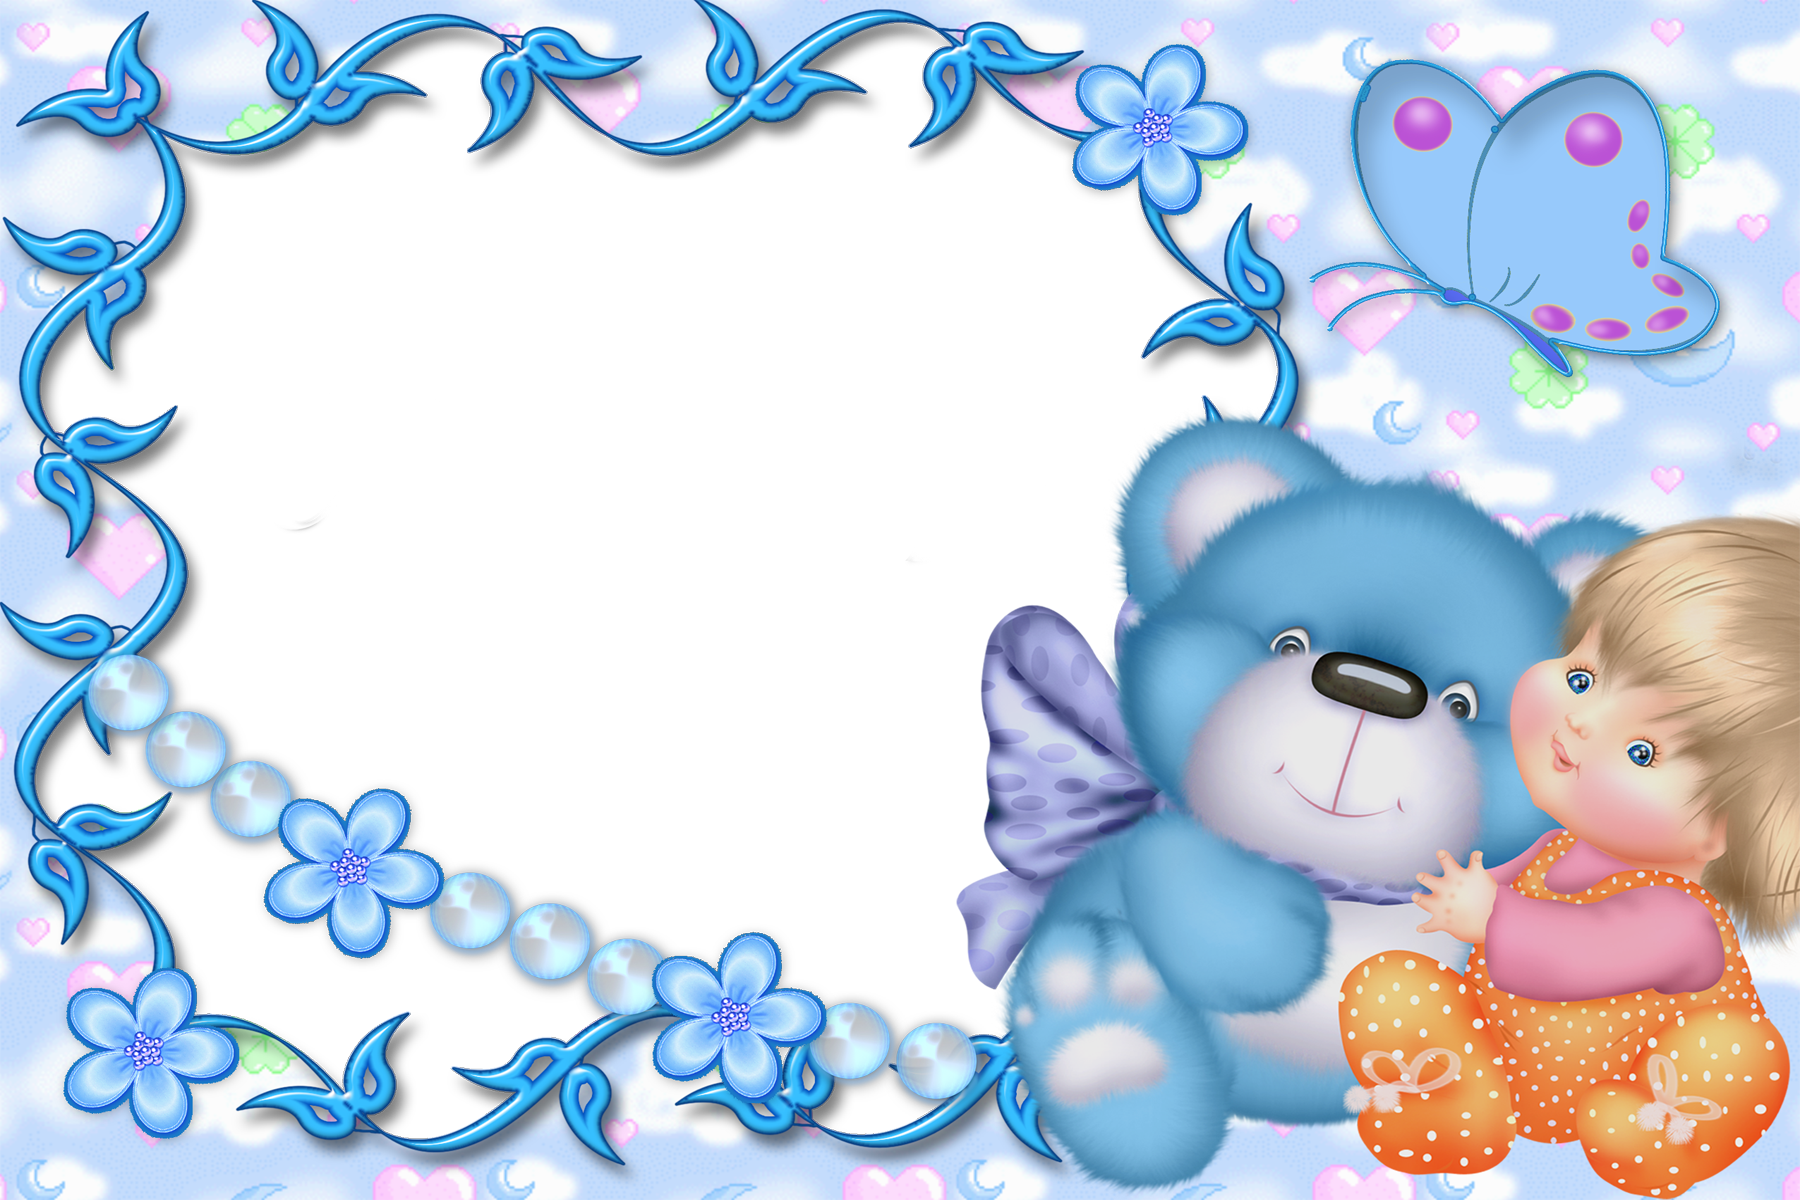 Cute Kids Blue Transparent Frame with Kid and Teddy Bear.